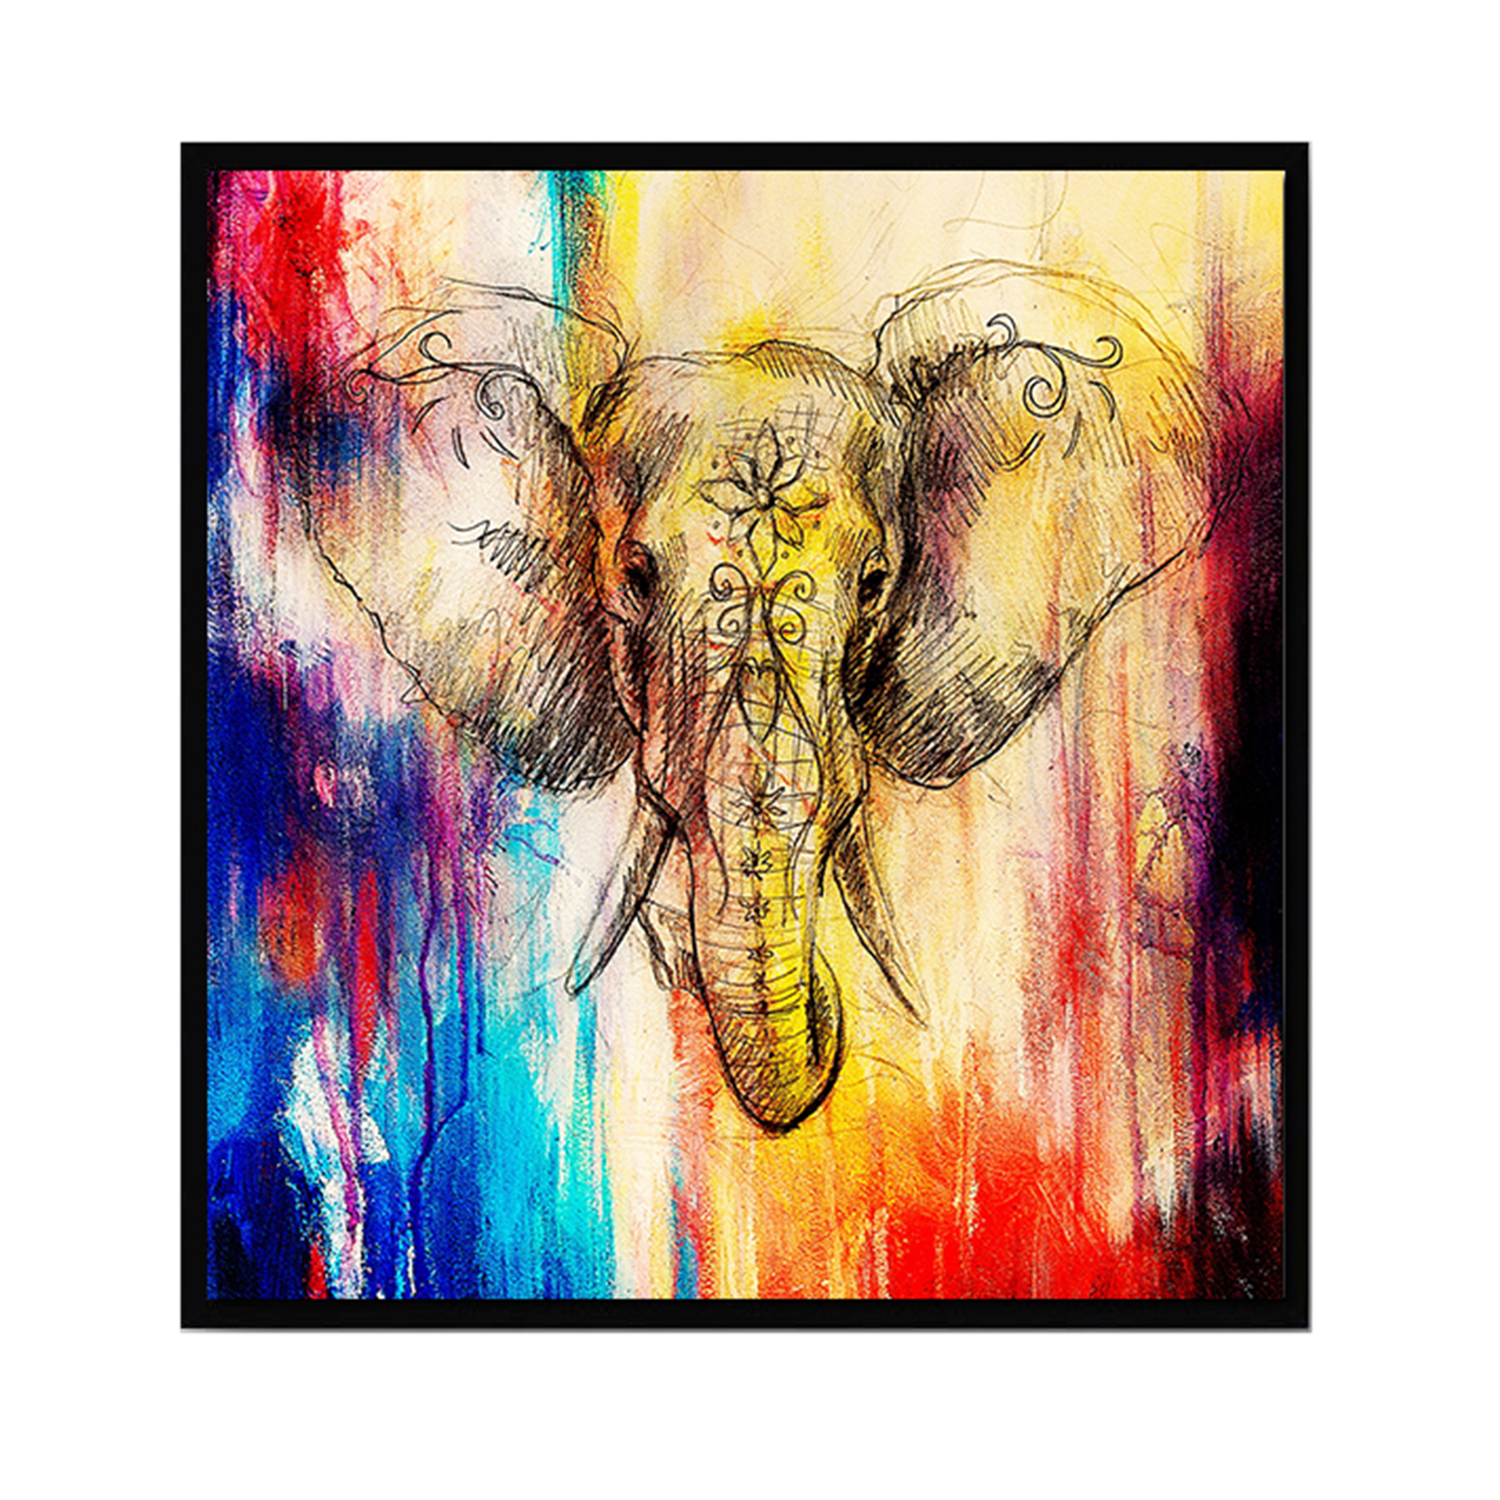 Abstract Art Style Elephant Printed Canvas Decoration Wall Art for Home Living Room Bedroom Office Hotel Pub 20 x 20cm - intl